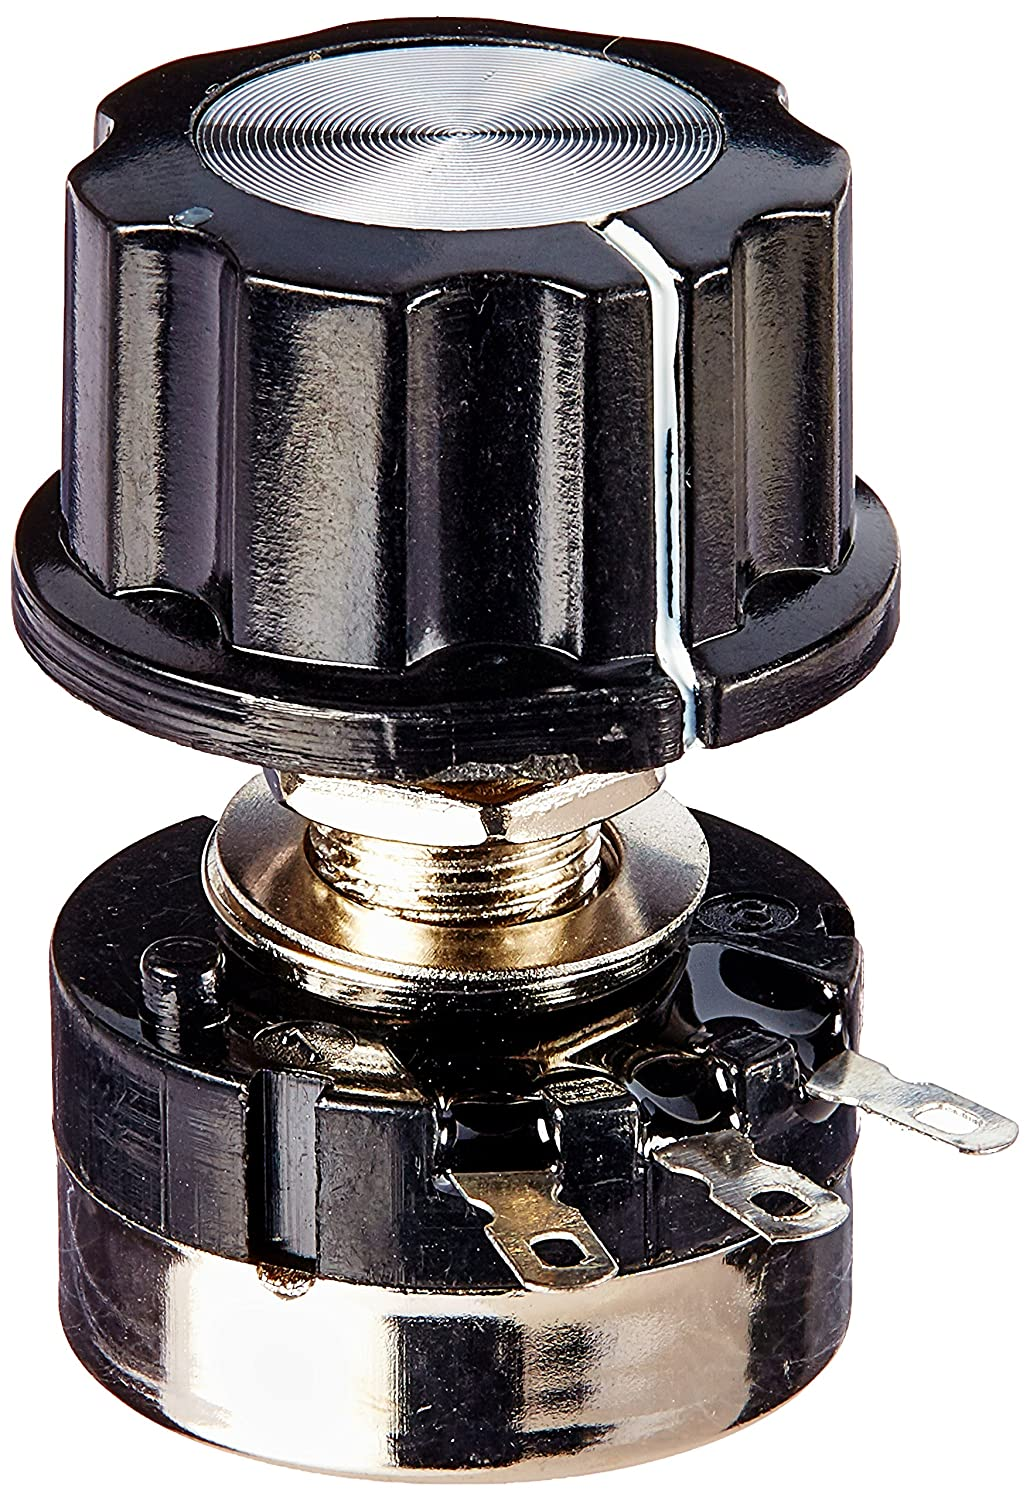 Uxcell RV24YN20S Single Turn Carbon Film Rotary Taper Potentiometer with Knob, 10K Ohm a13060500ux0051